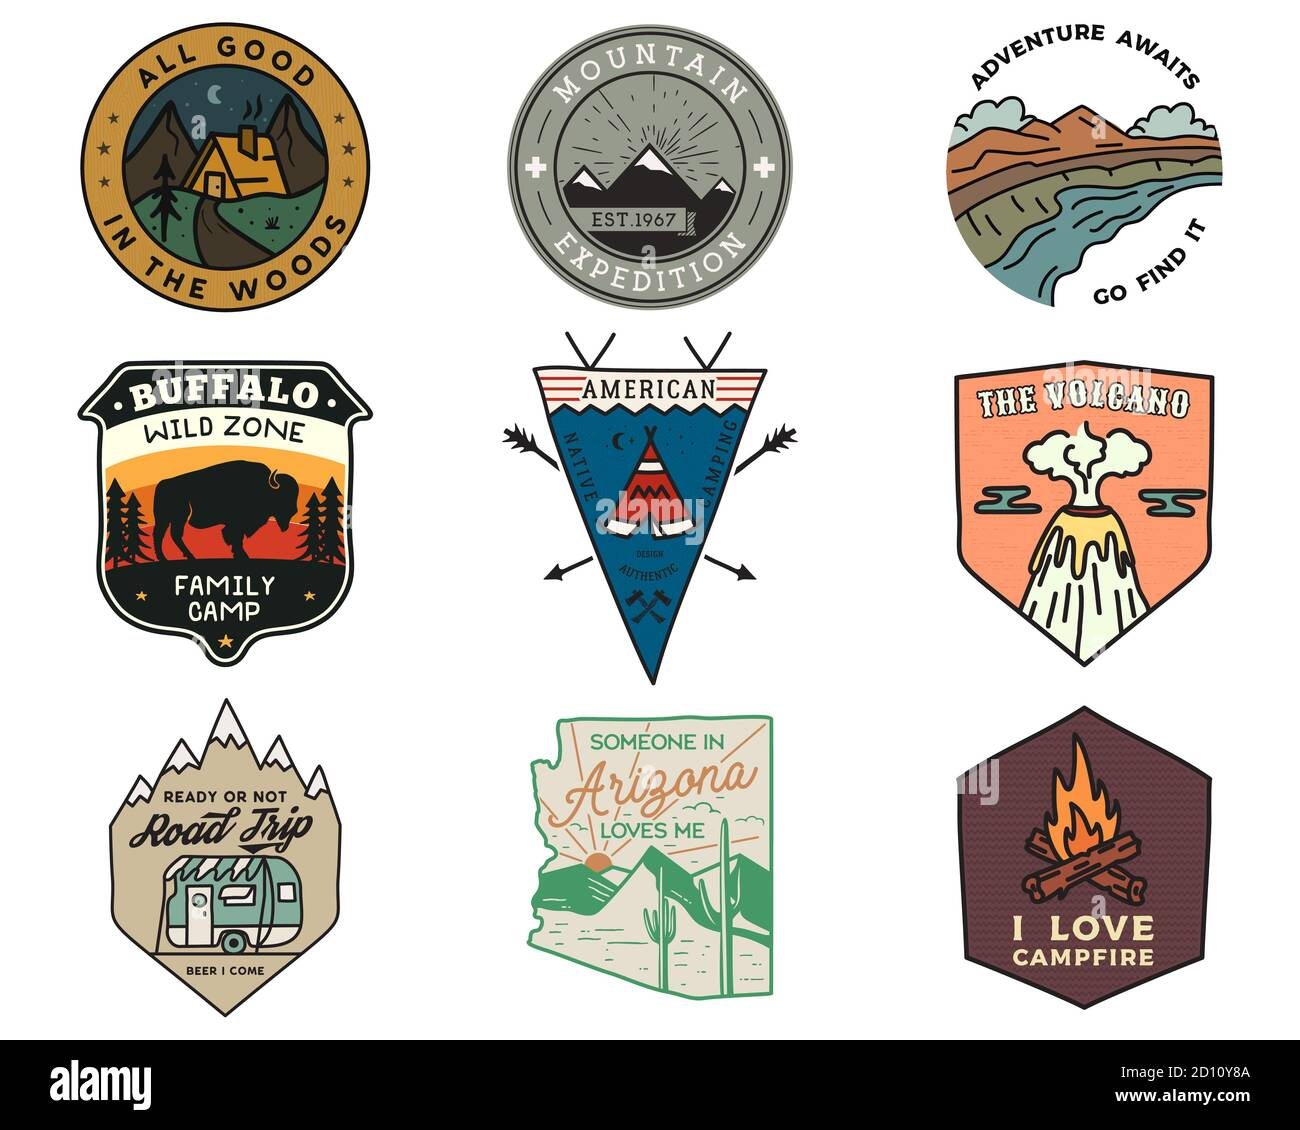 Vintage mountain camping badges logos set, Adventure patches. Hand drawn stickers designs bundle. Travel expedition, hiking labels. Outdoor sports Stock Vector